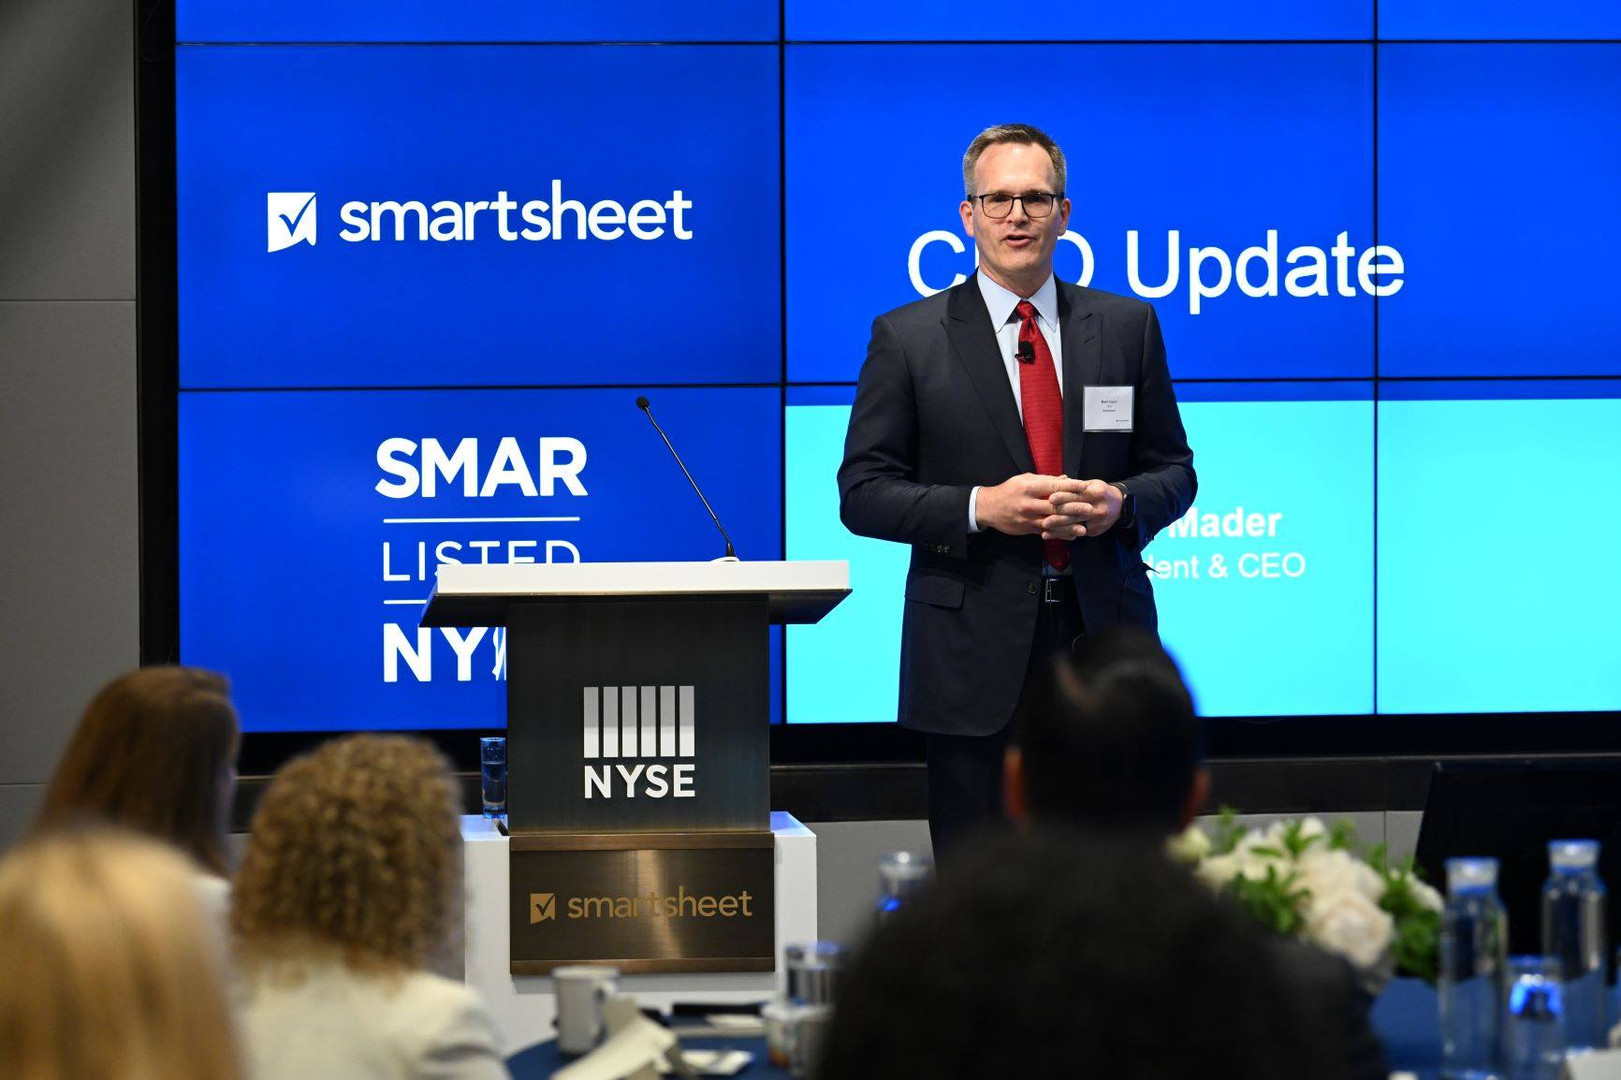 Smartsheet presentation for IPO at the NYSE